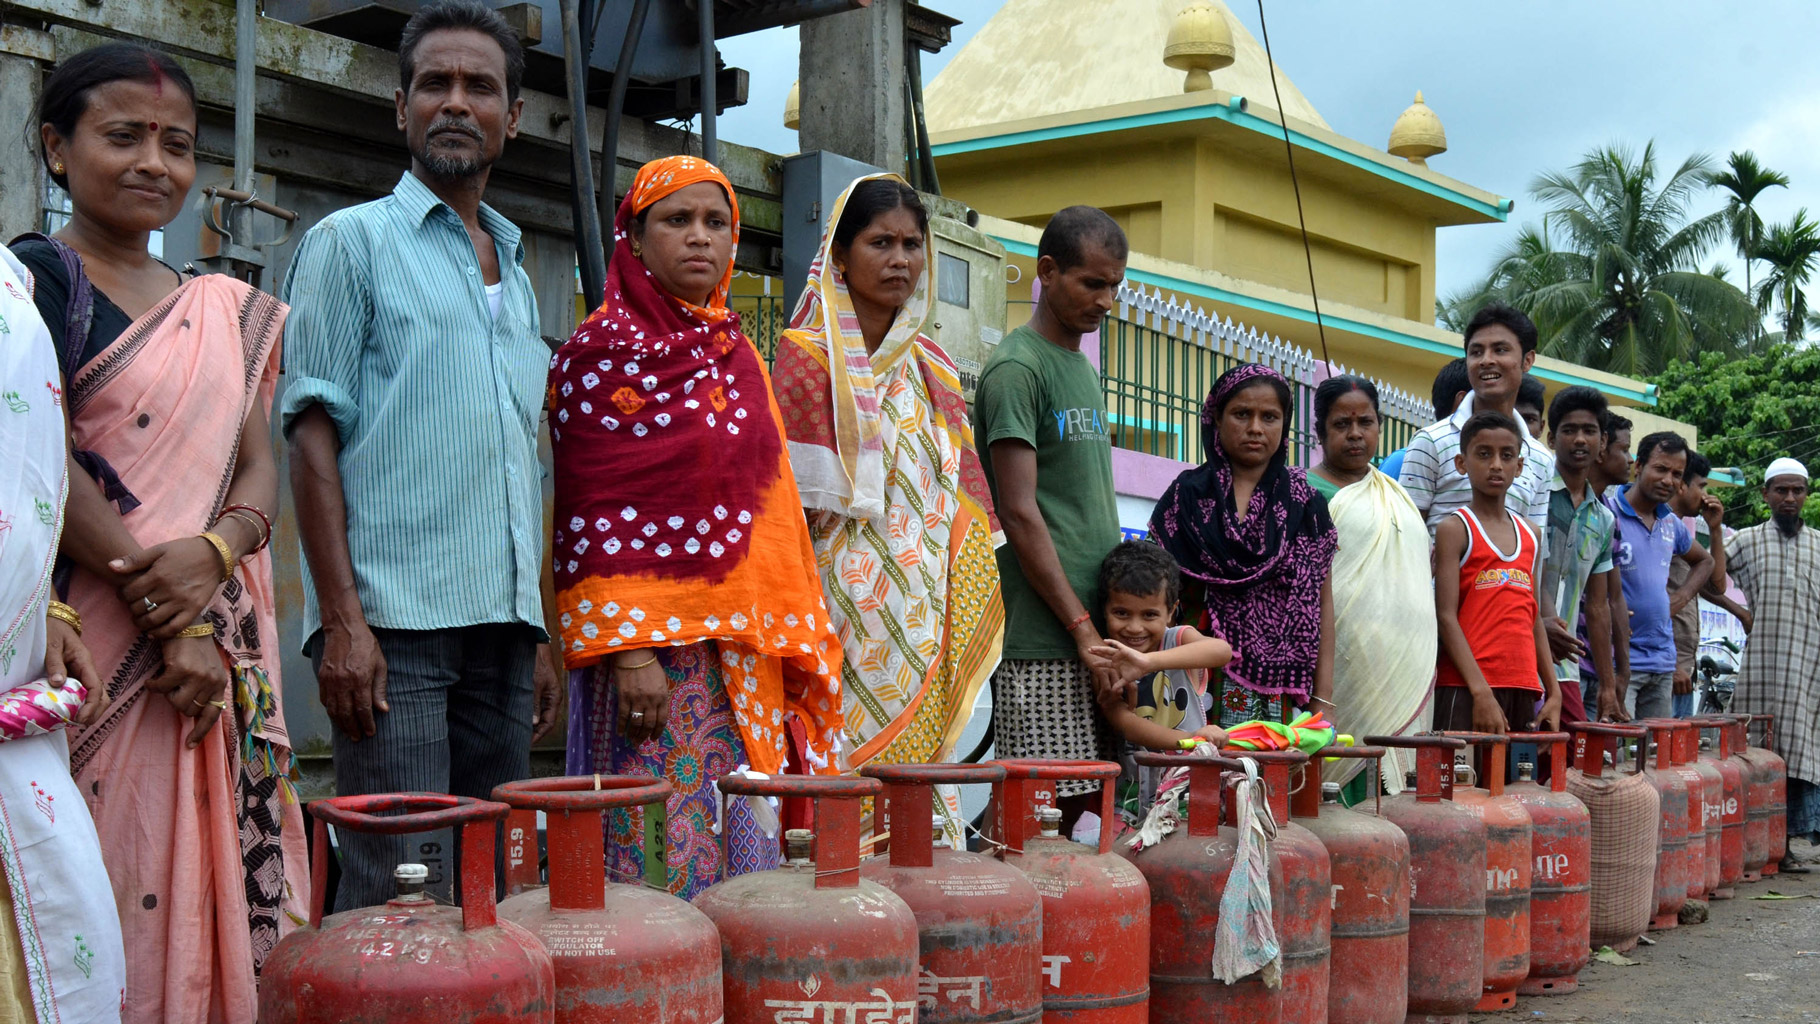 LPG subsidies: Centre comes under Opposition fire in Rajya Sabha